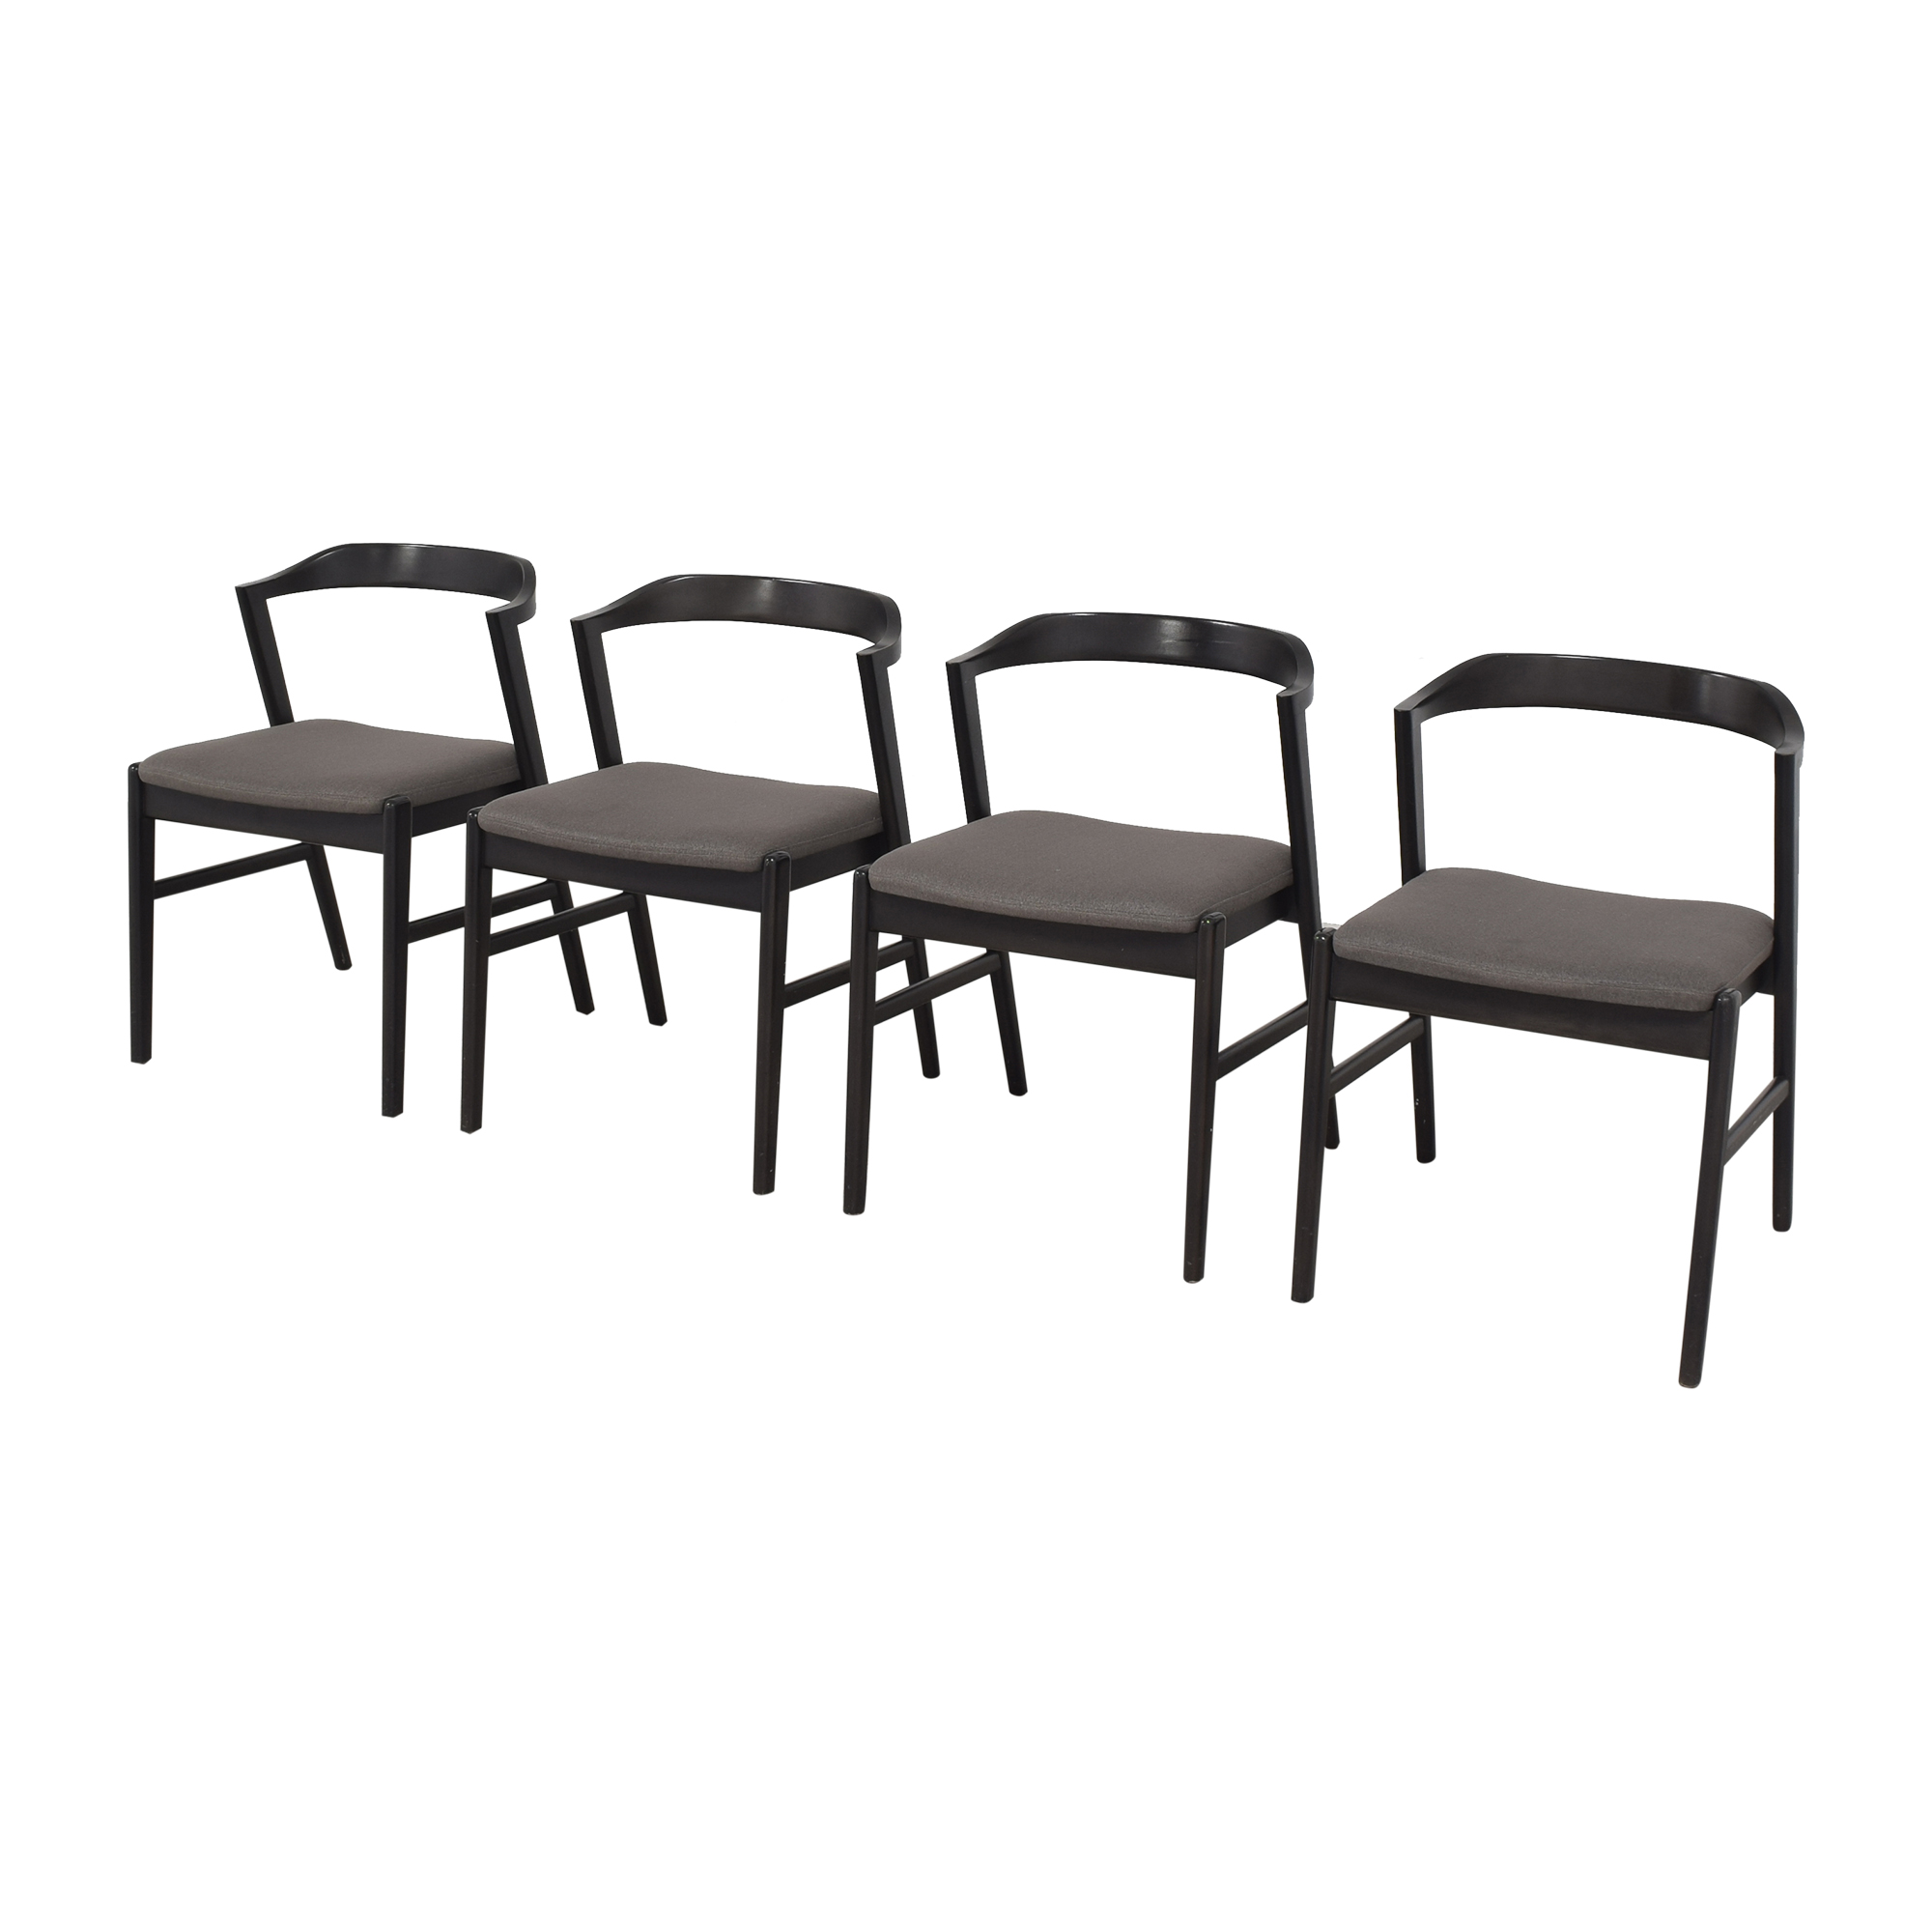 Room & Board Room & Board Jansen Dining Chairs ct